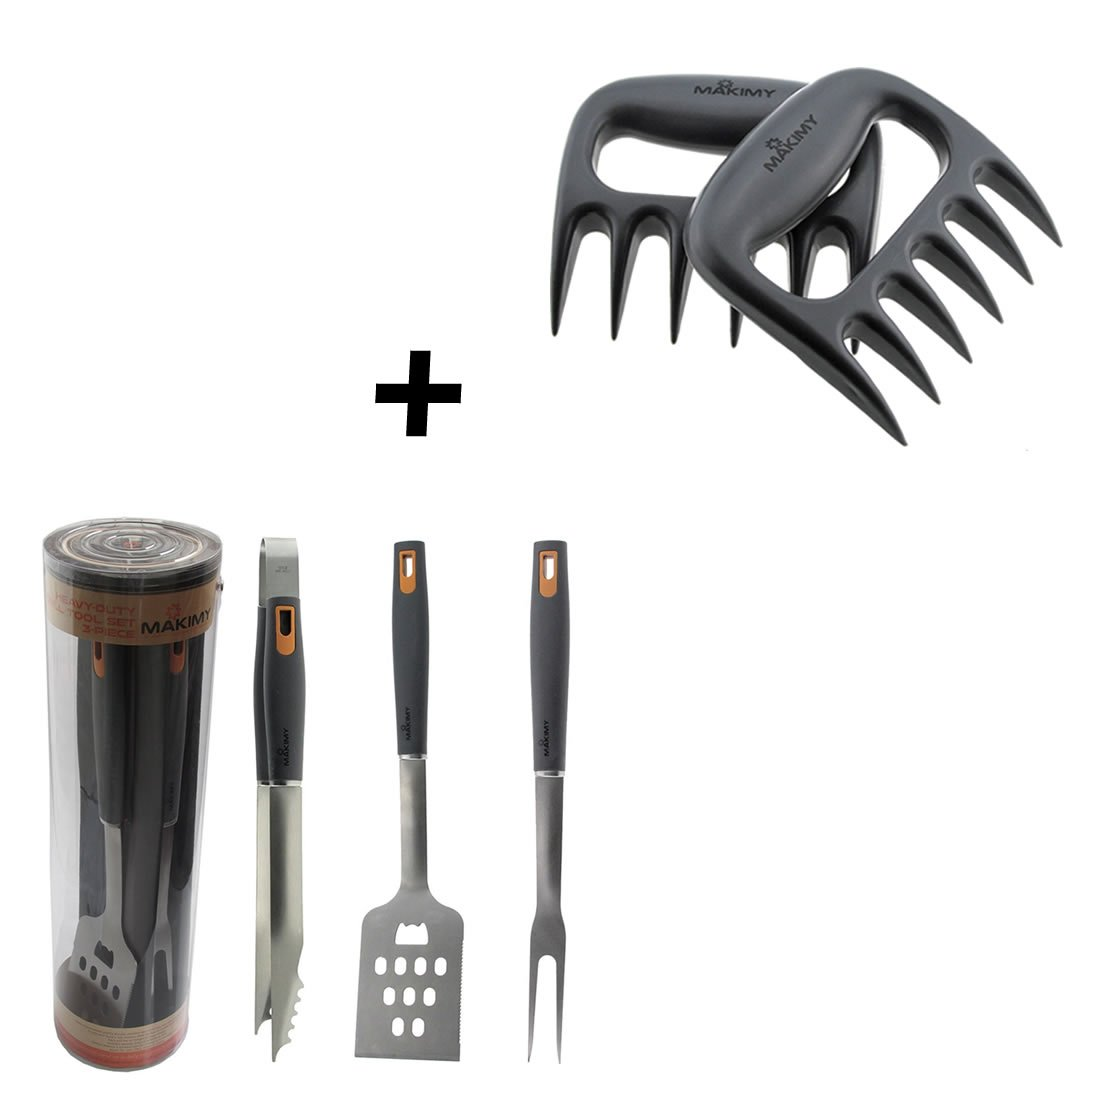 Makimy BBQ Tools + Meat Claws - 3-Piece Professional-Grade Heavy Duty EXTRA STRONG Stainless-Steel Barbecue Tool Set - Gift Box - Great for Best Friend Gift